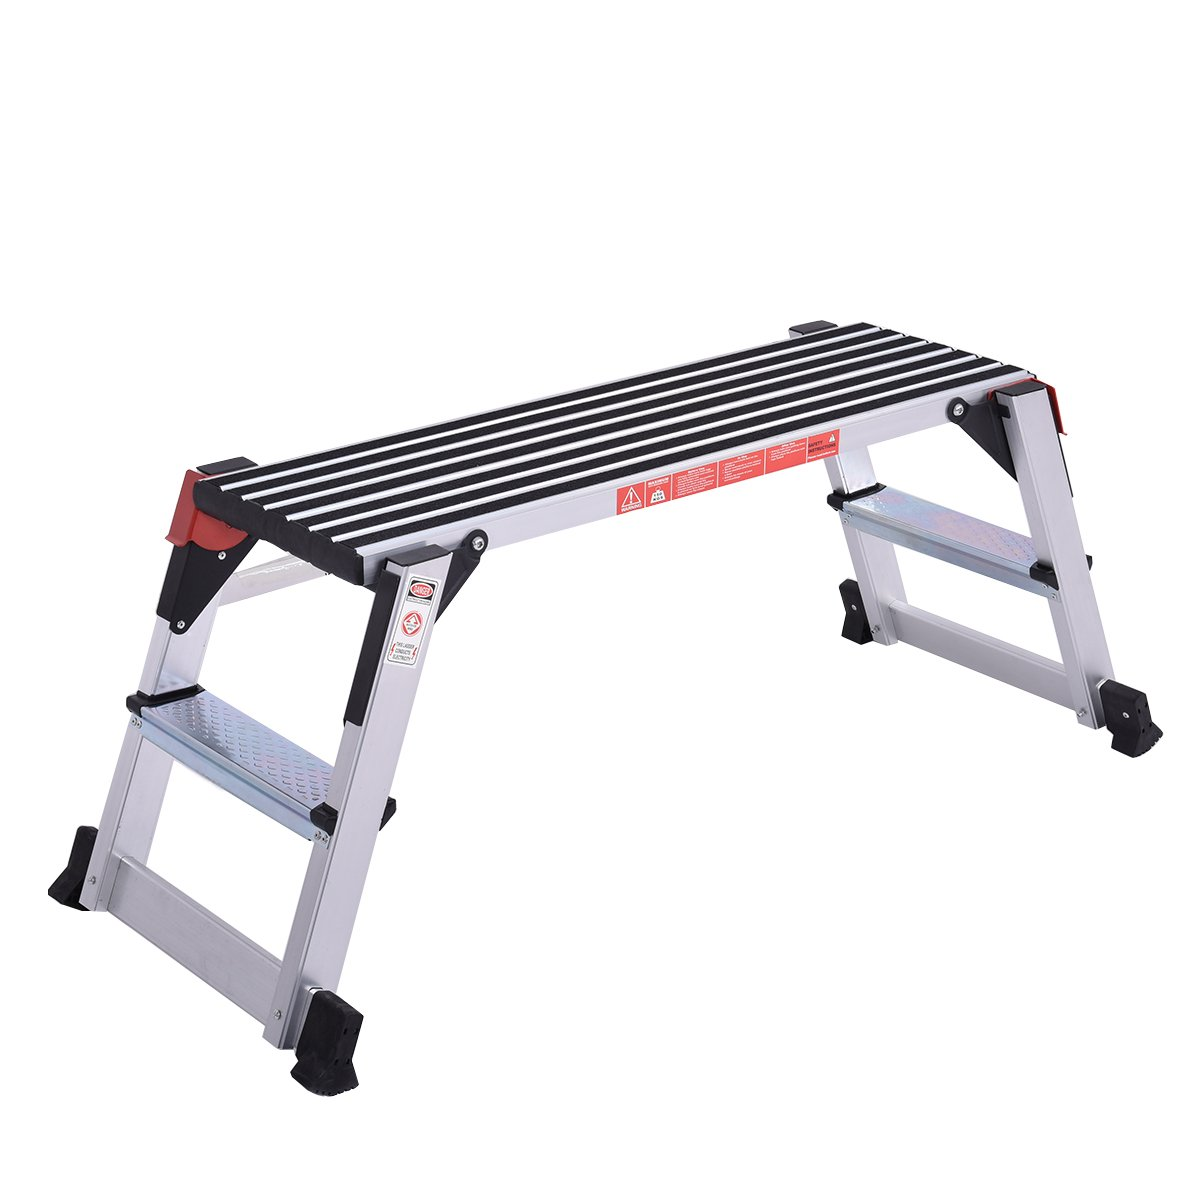 Giantex Aluminum Platform For Multi-Purposes